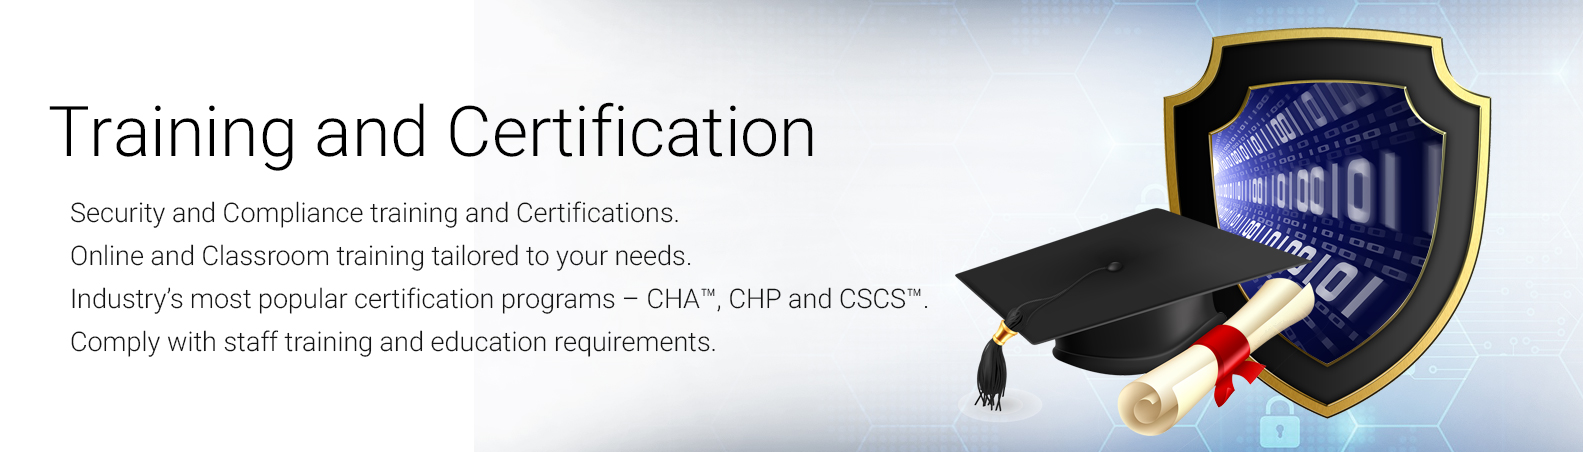 Training-and-Certification